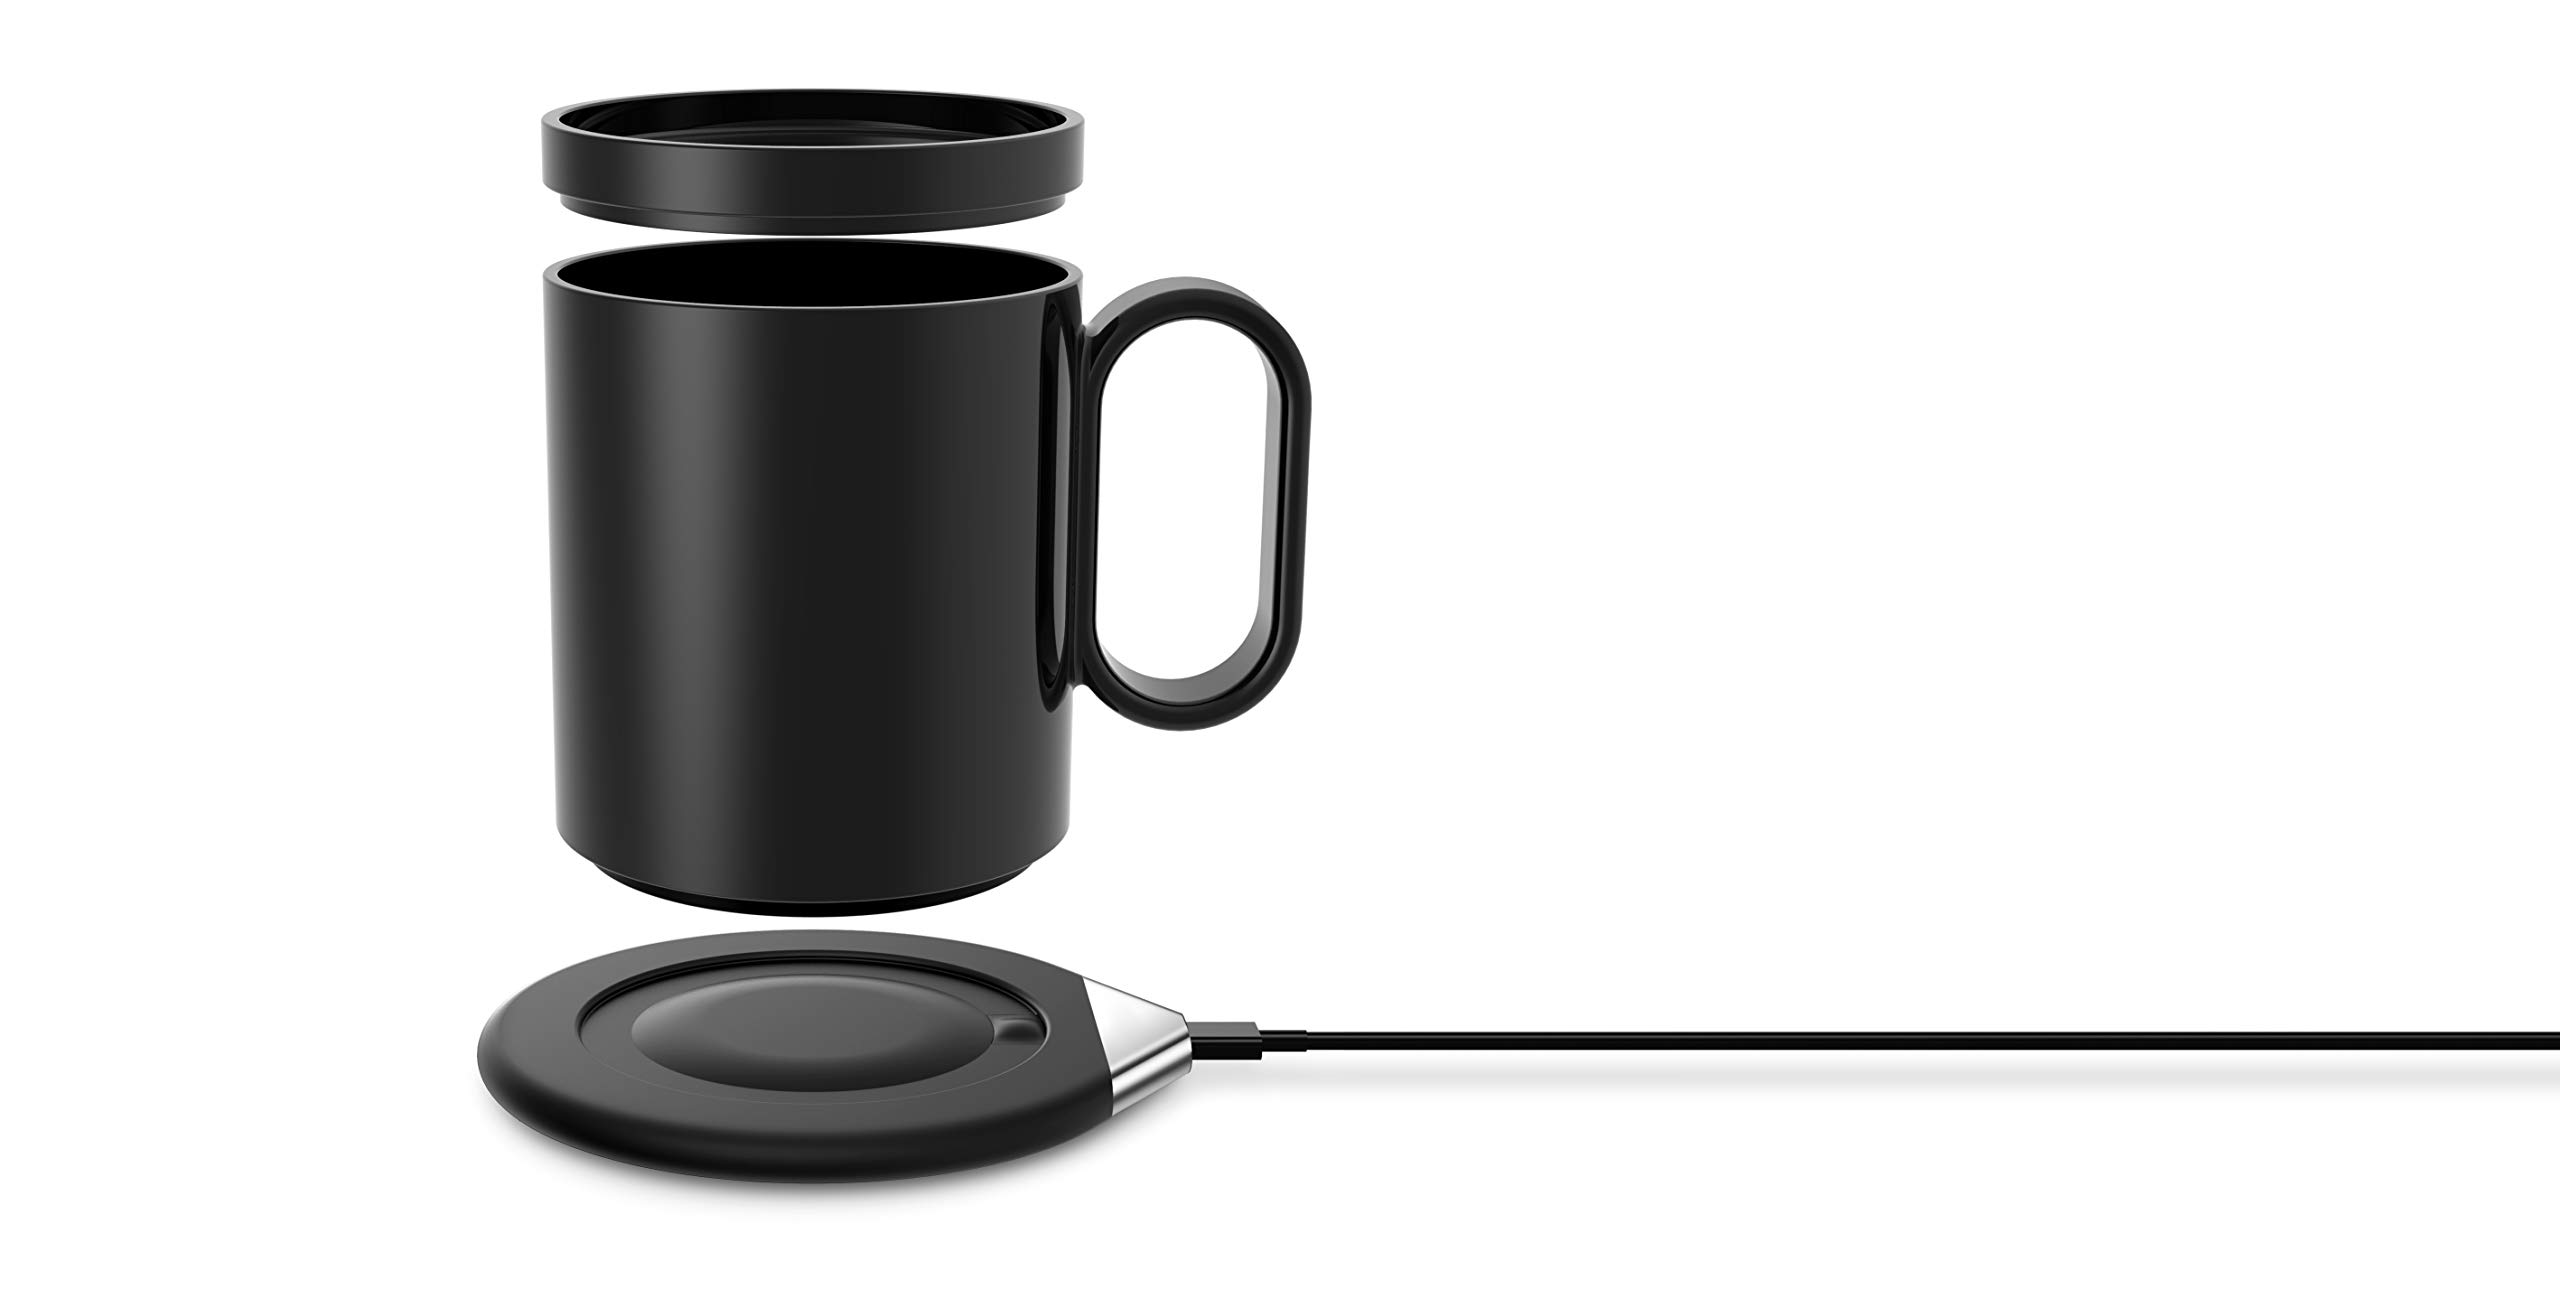 Coffee Mug Warmer,ROTEK Wireless Charger Heating Warm Cup 55 Degree Thermostatic Wireless Charger Coaster Hot Warm Coffee Black for Home Office Desk